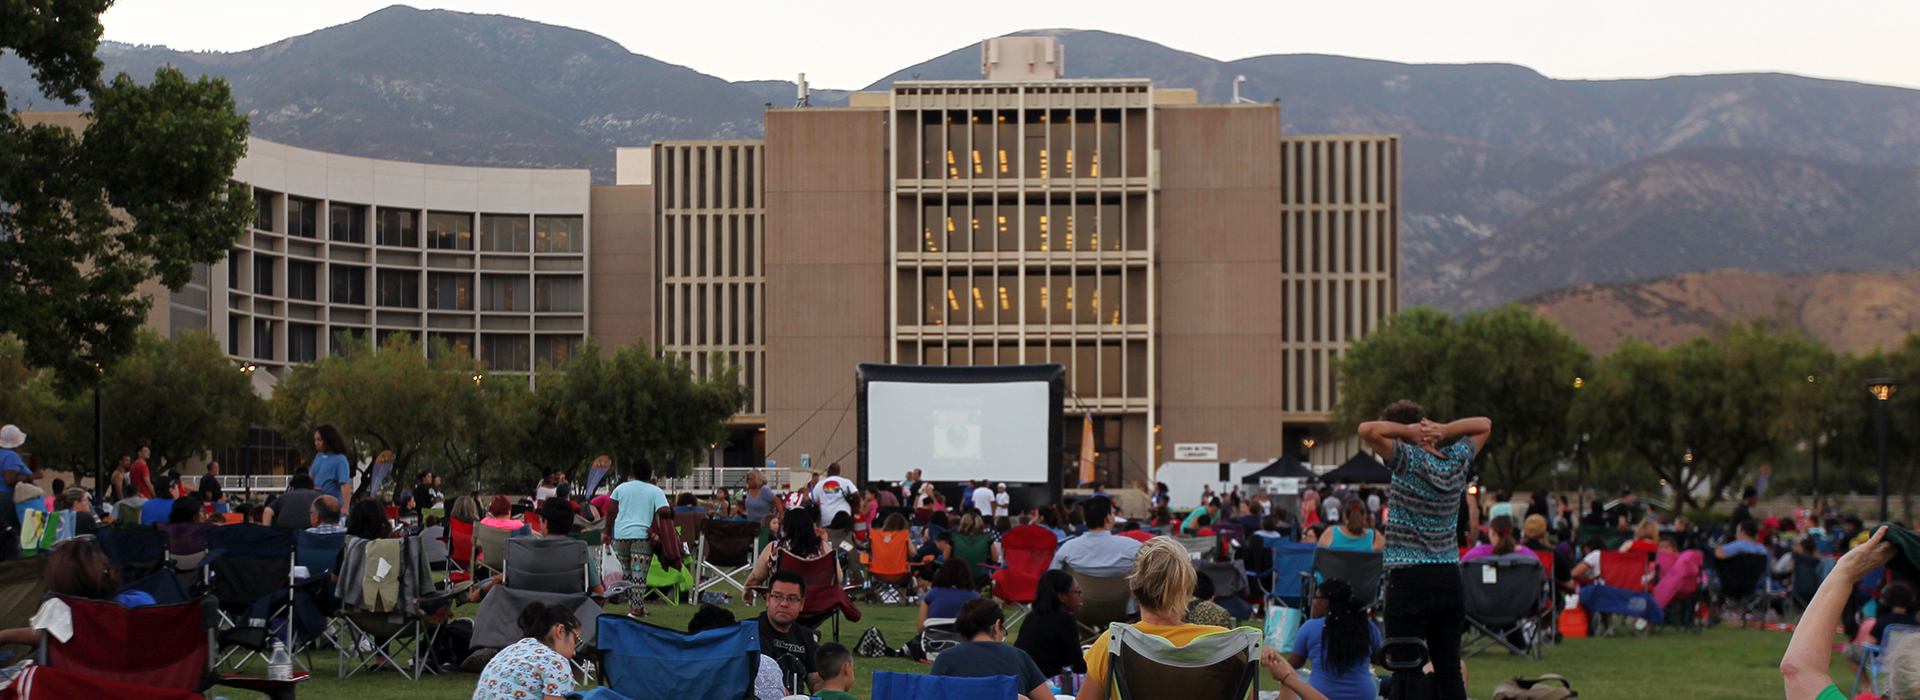 Free Summer Movie Series returns to CSUSB library lawn